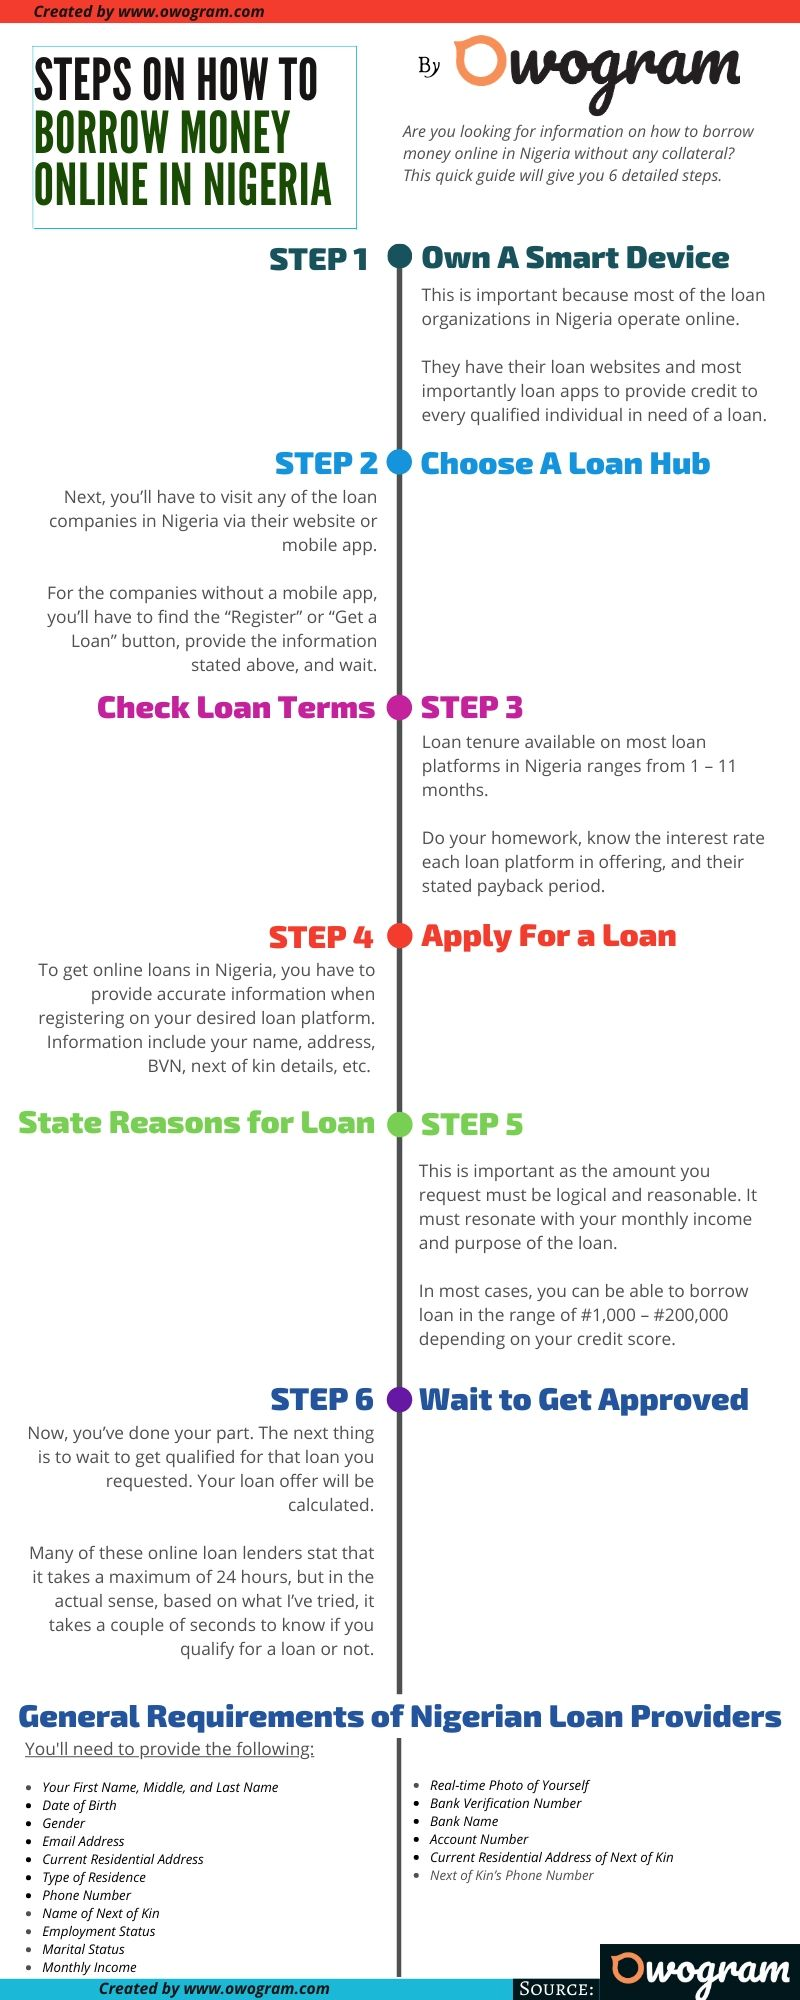 infographic on steps to borrow money online in nigeria